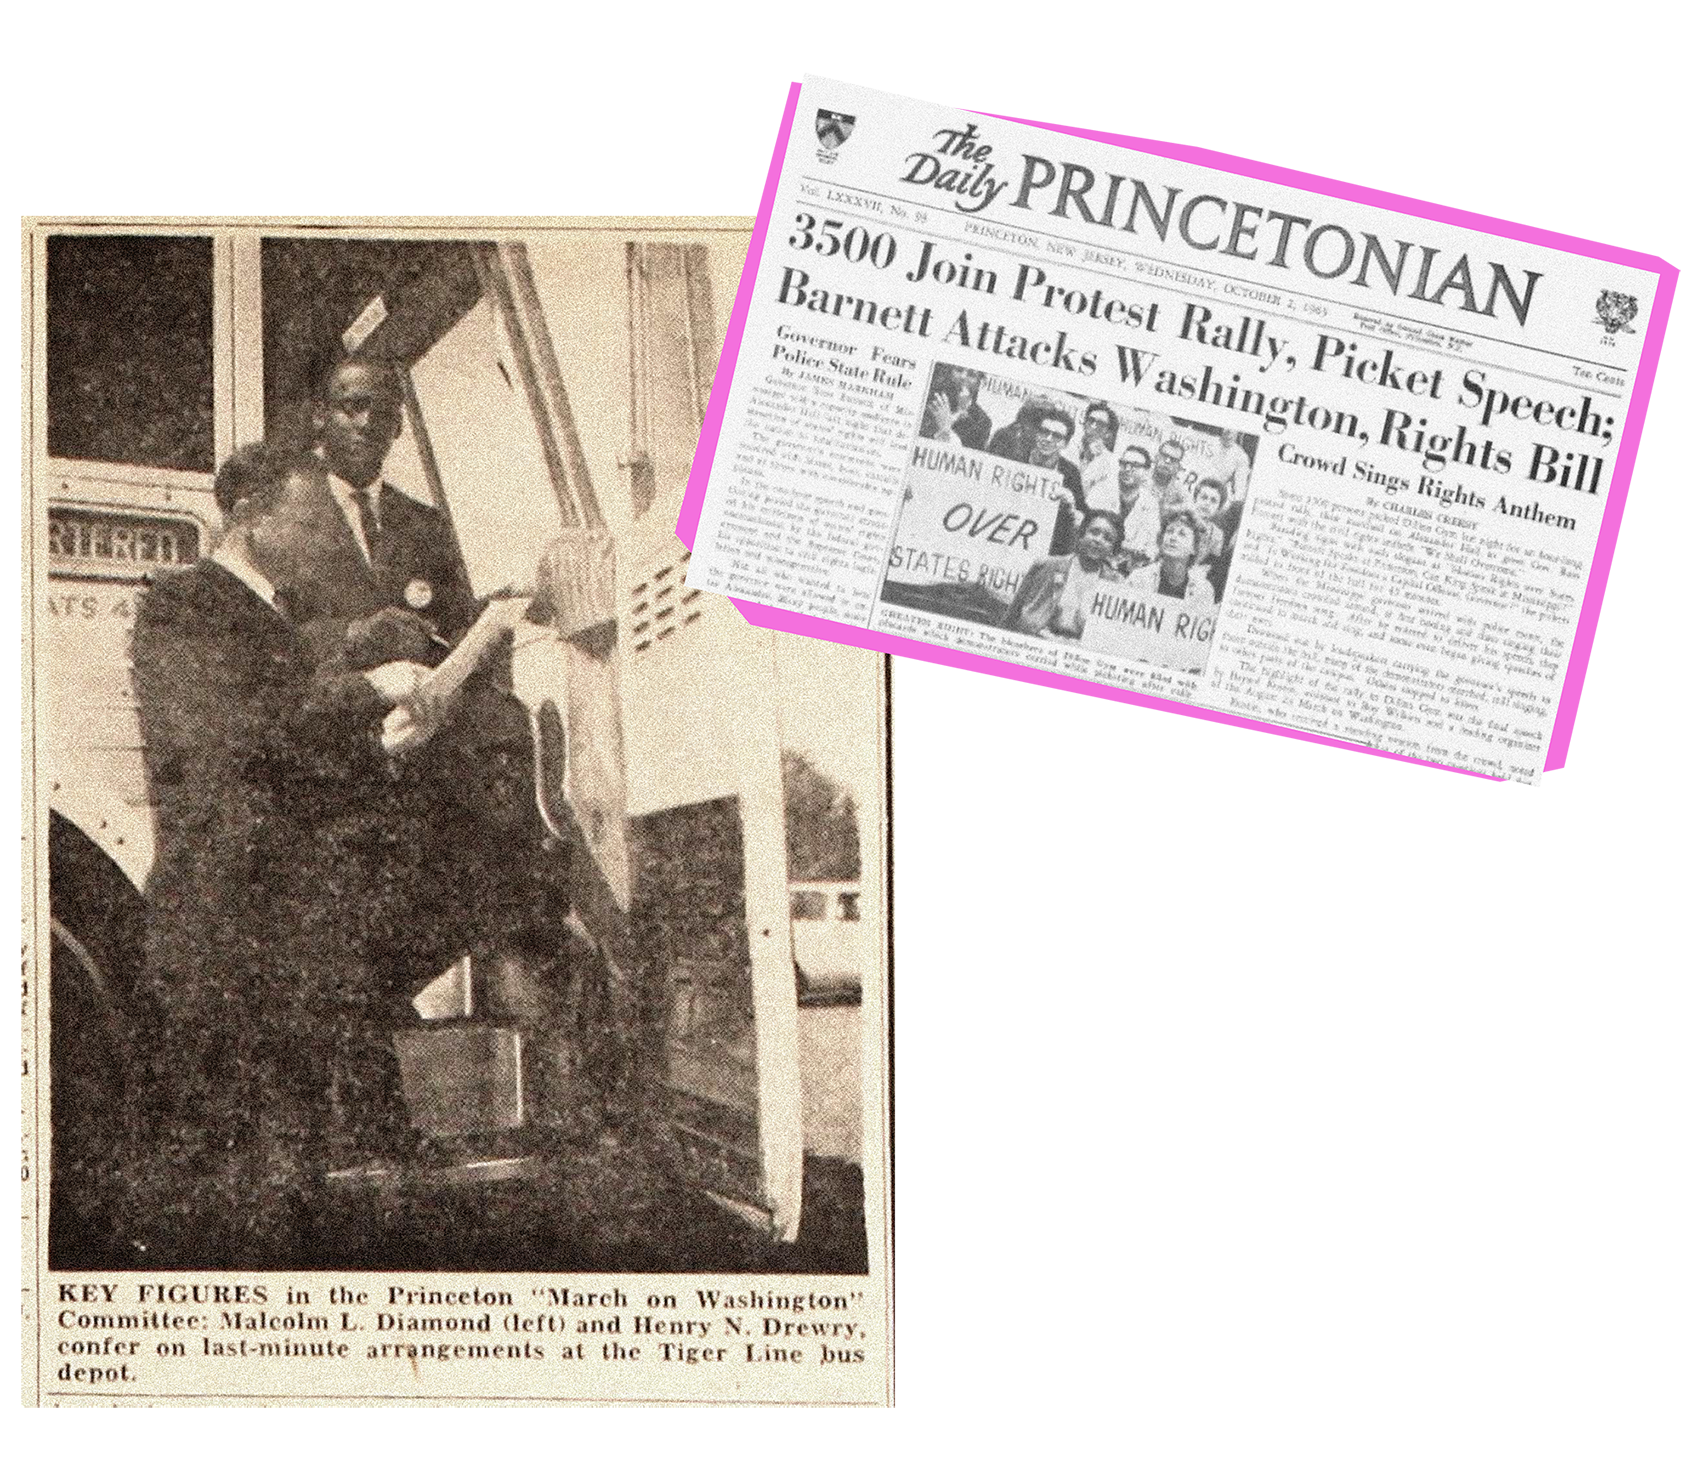 """Princeton administrators Malcolm Diamond and Henry Drewry examining papers next to a bus before the March on Washington in 1963. 1963 issue of The Daily Princetonian showing students holding """"Human rights over states rights"""" signs to protest Ross Barnett."""